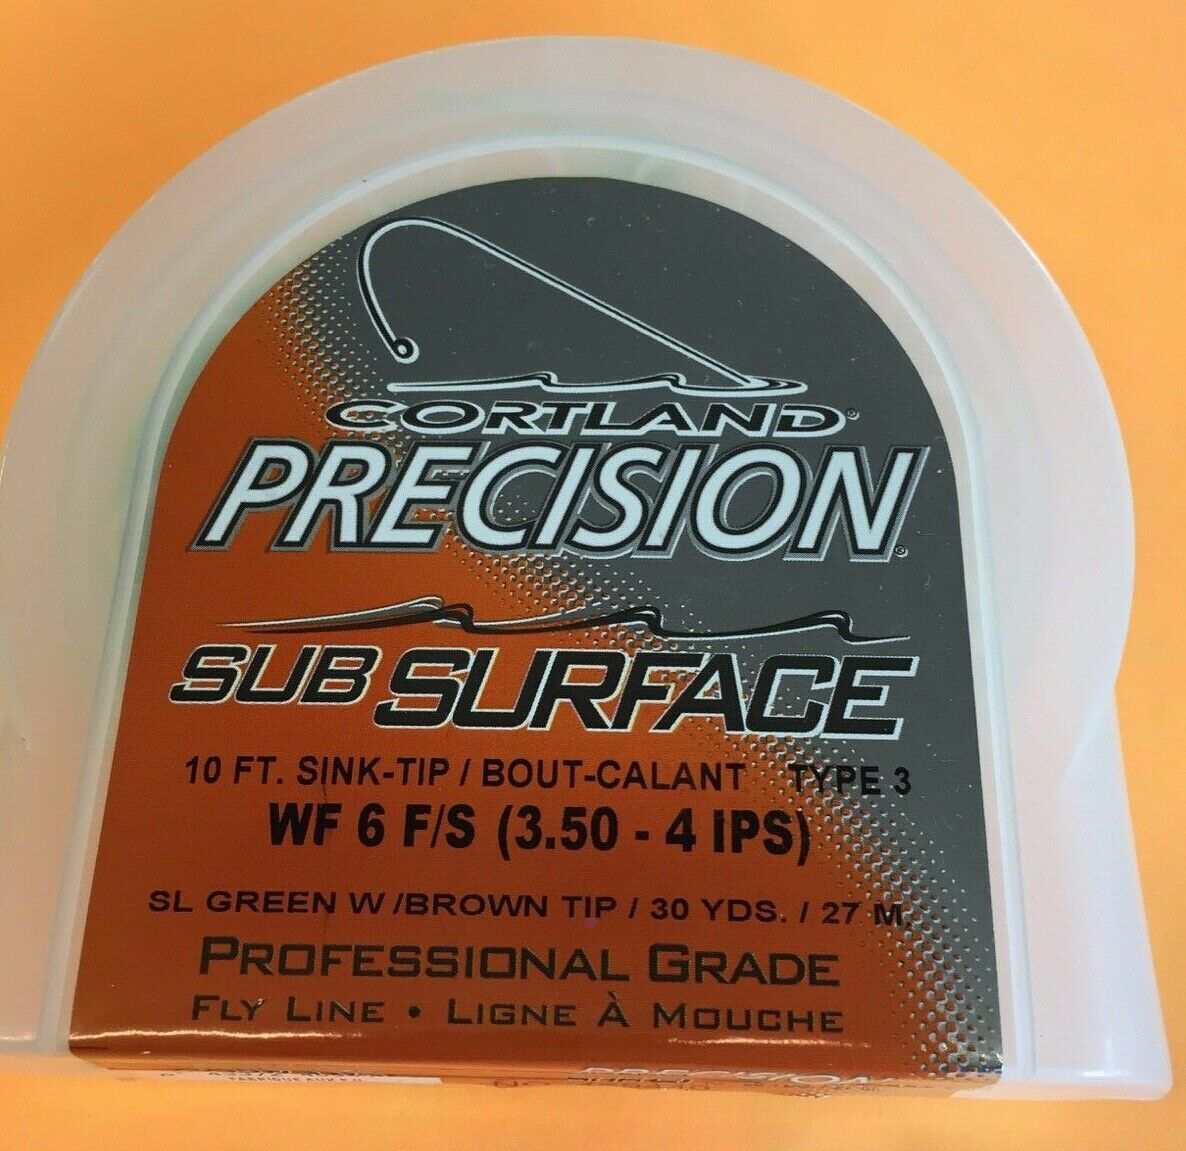 Cortland Precision Sub Surface WF6F S (3.5-4.  IPS) 10 ft sink tip type 3 Fly Lin  quality first consumers first